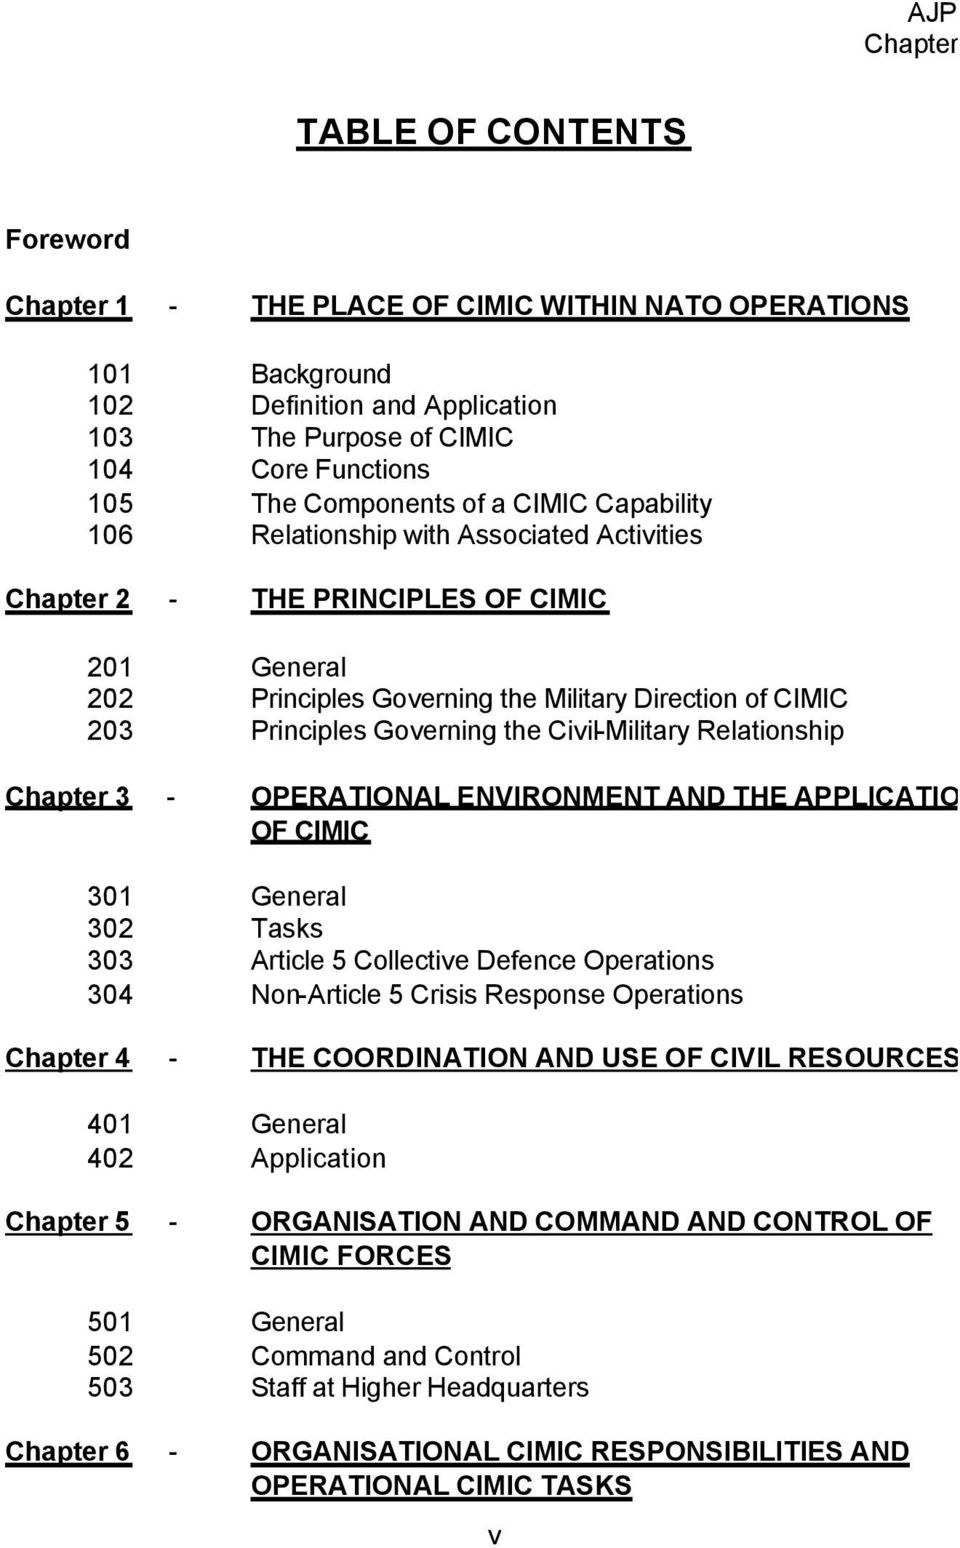 Civil-Military Relationship Chapter 3 - OPERATIONAL ENVIRONMENT AND THE APPLICATION OF CIMIC 301 General 302 Tasks 303 Article 5 Collective Defence Operations 304 Non-Article 5 Crisis Response